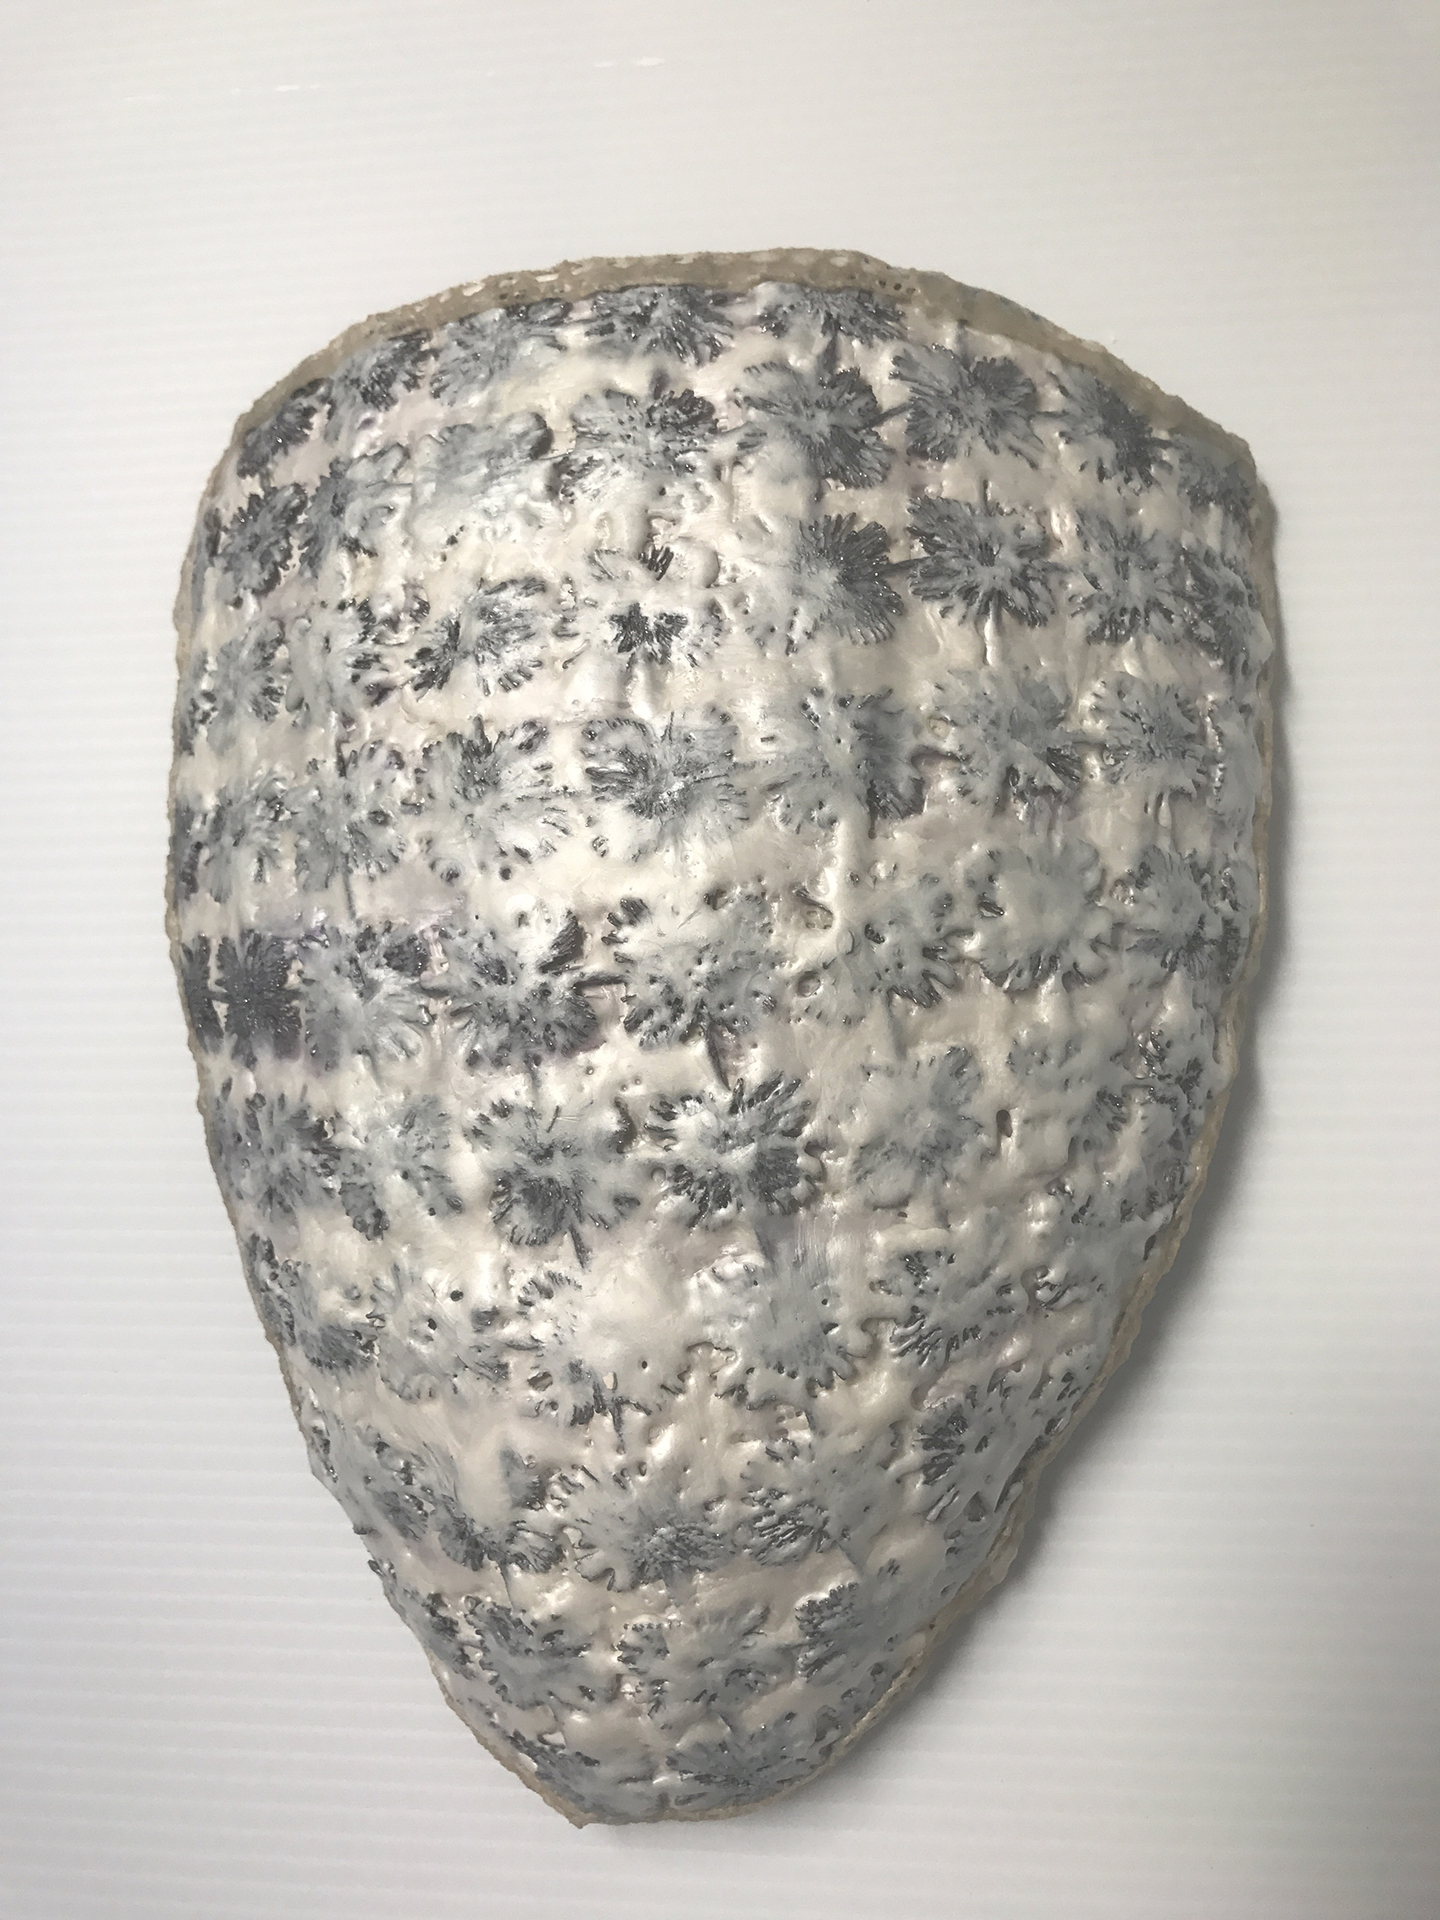 Deborah Kapoor, Shield, fiber, encaustic